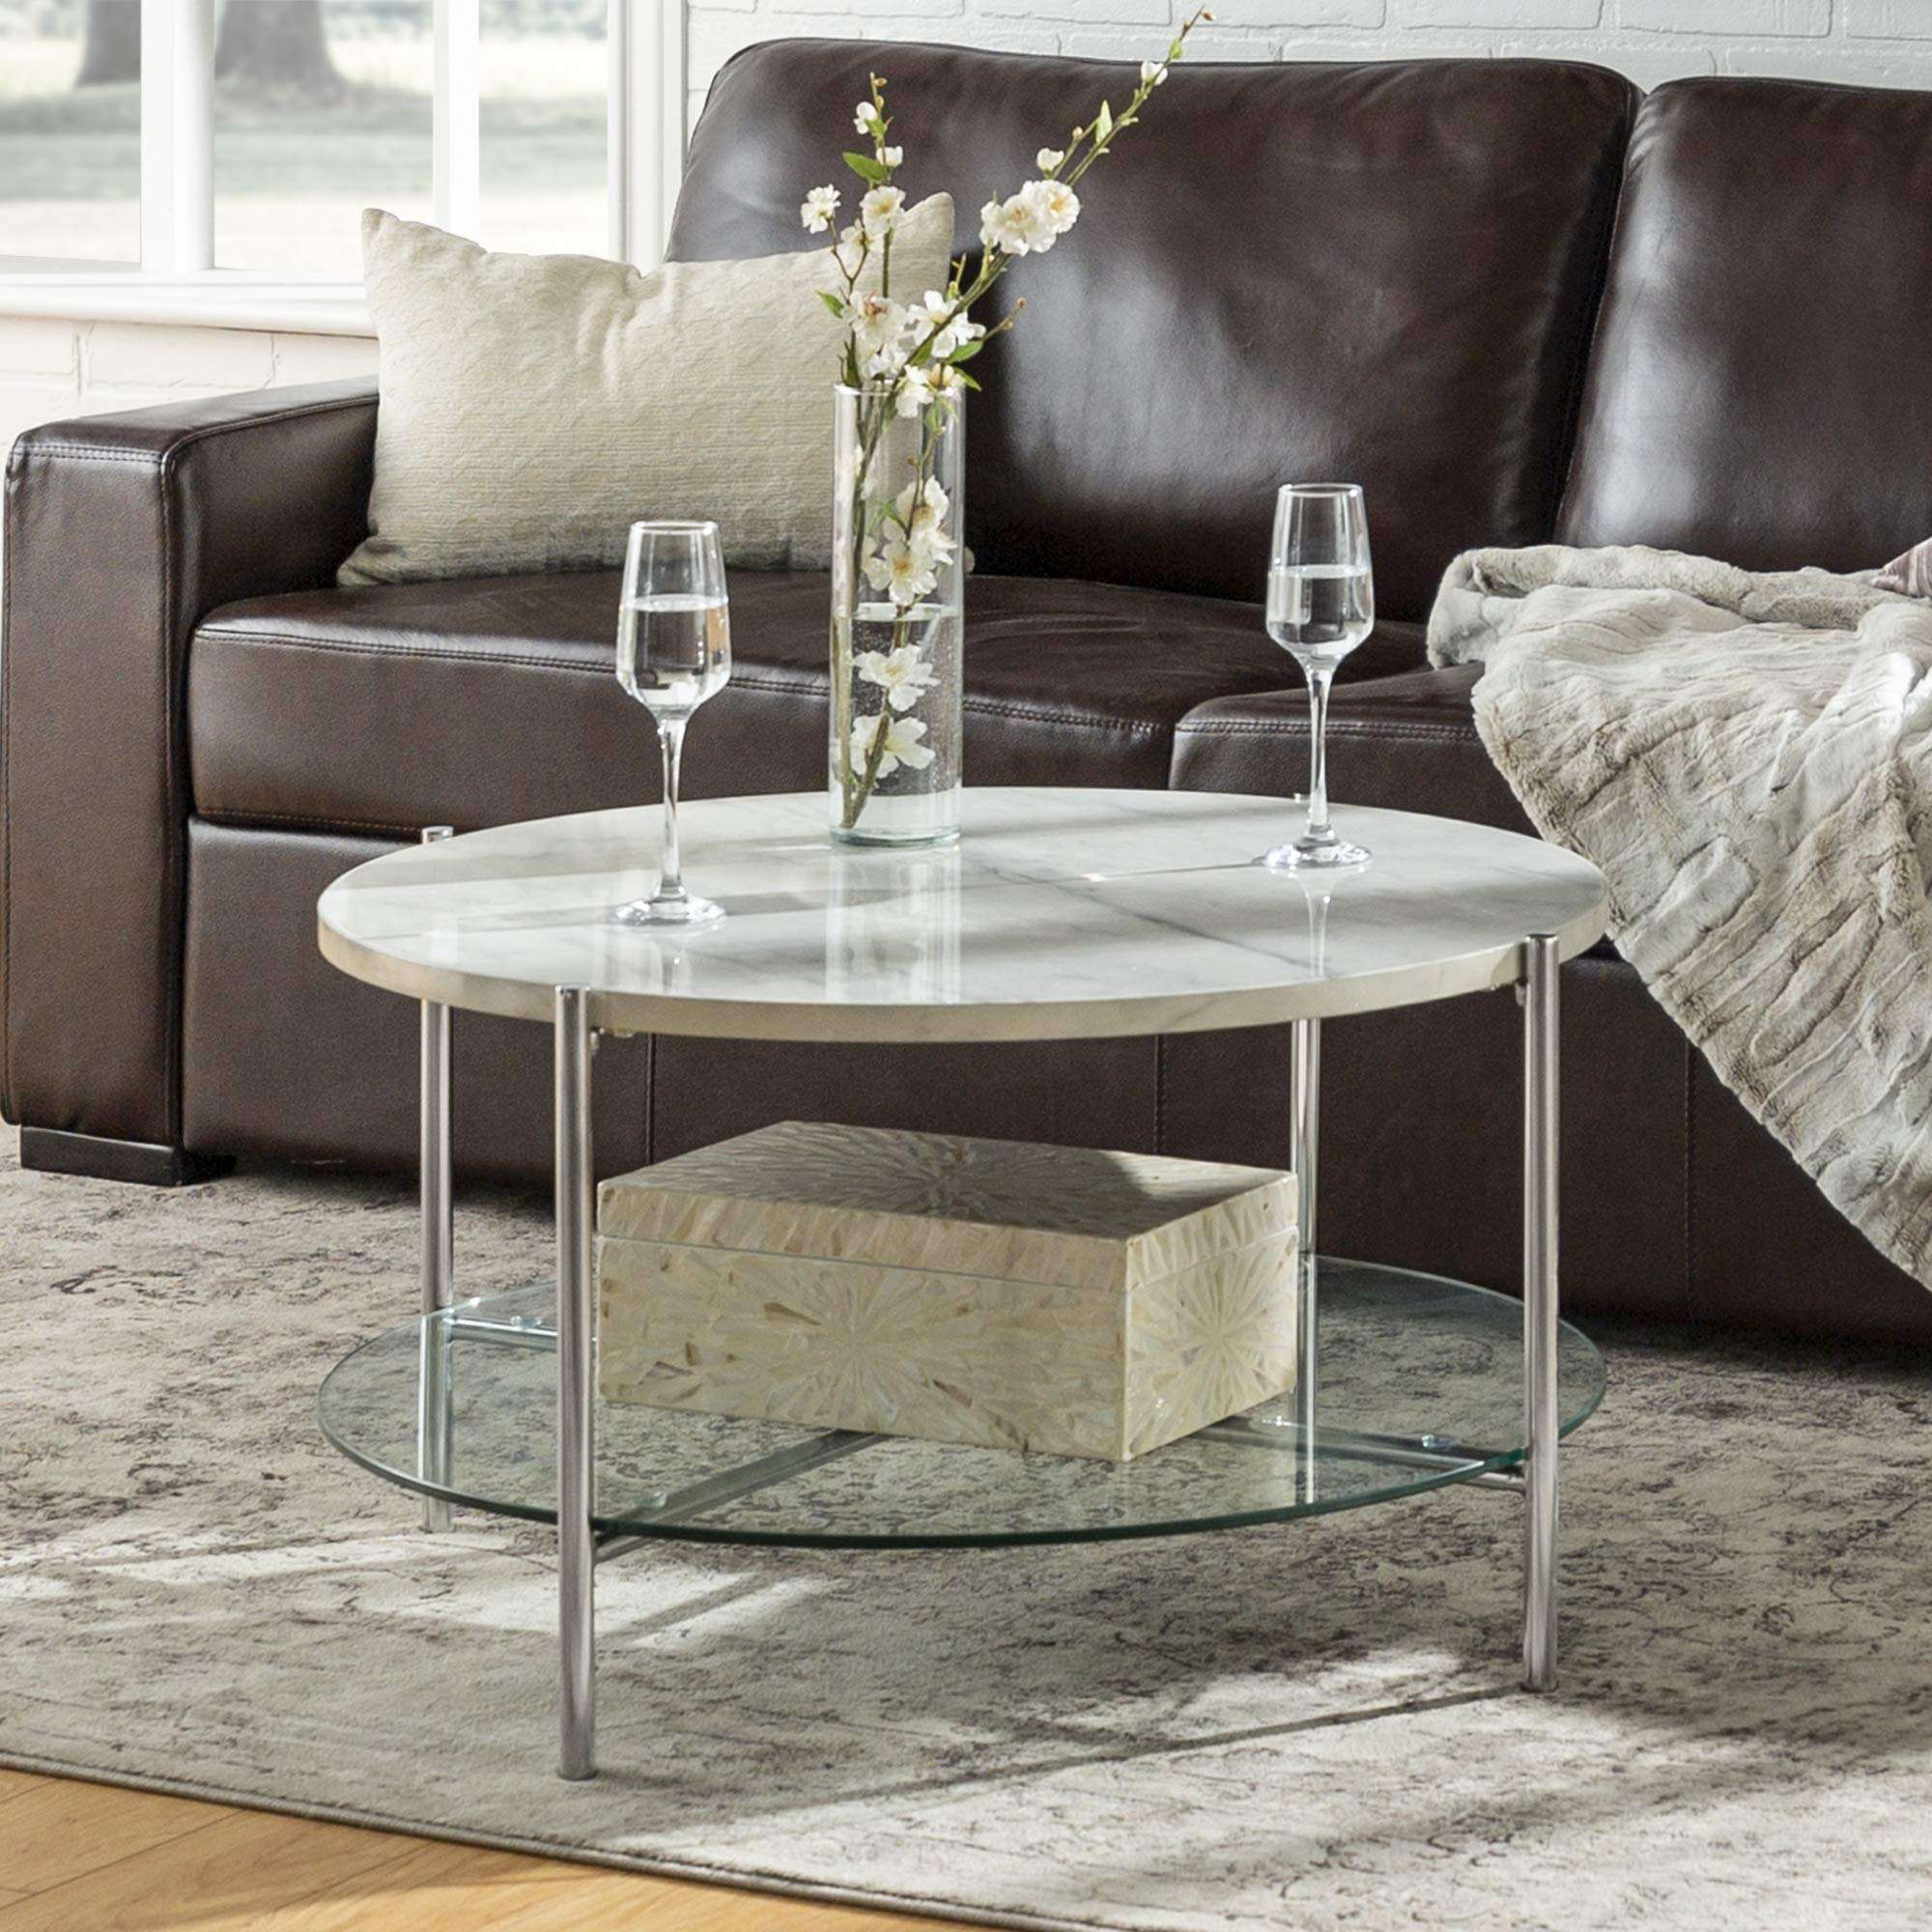 WE Furniture Modern Round Coffee Accent Table Living Room, 32 Inch, White Marble, Silver by WE Furniture